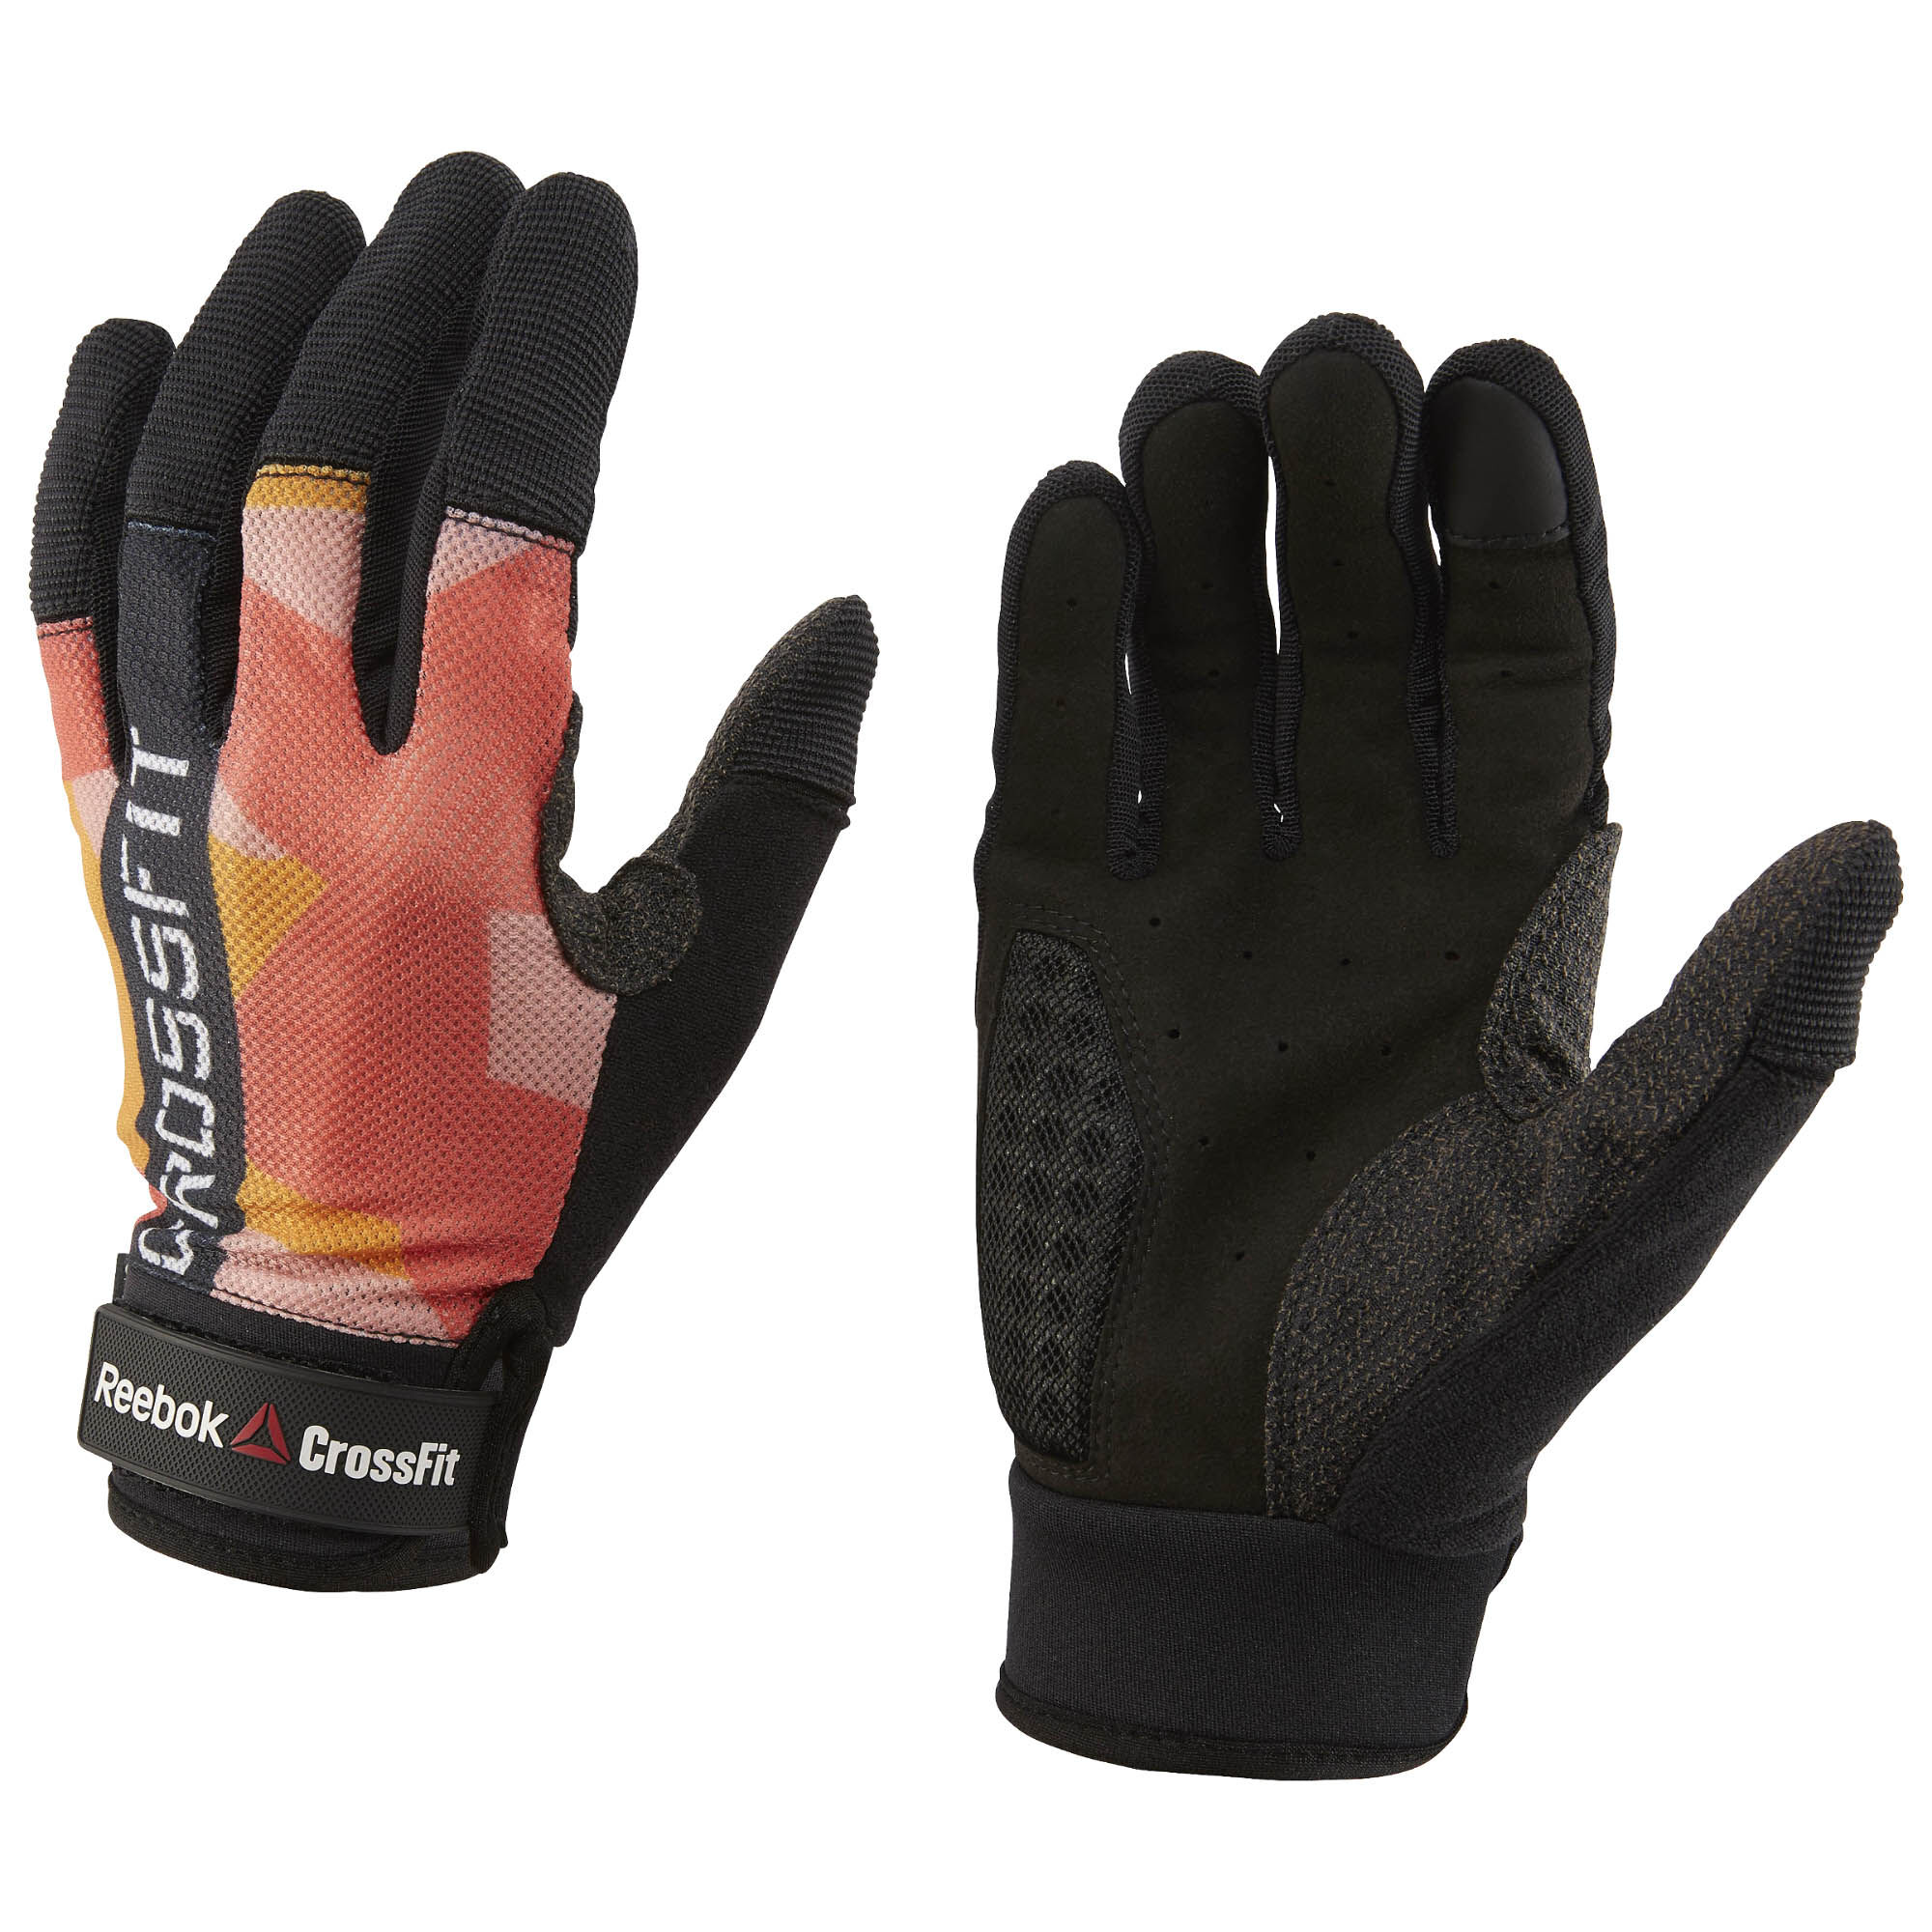 Reebok Crossfit Training Gloves: Reebok Crossfit Gloves Womens Sale,up To 32% Discounts